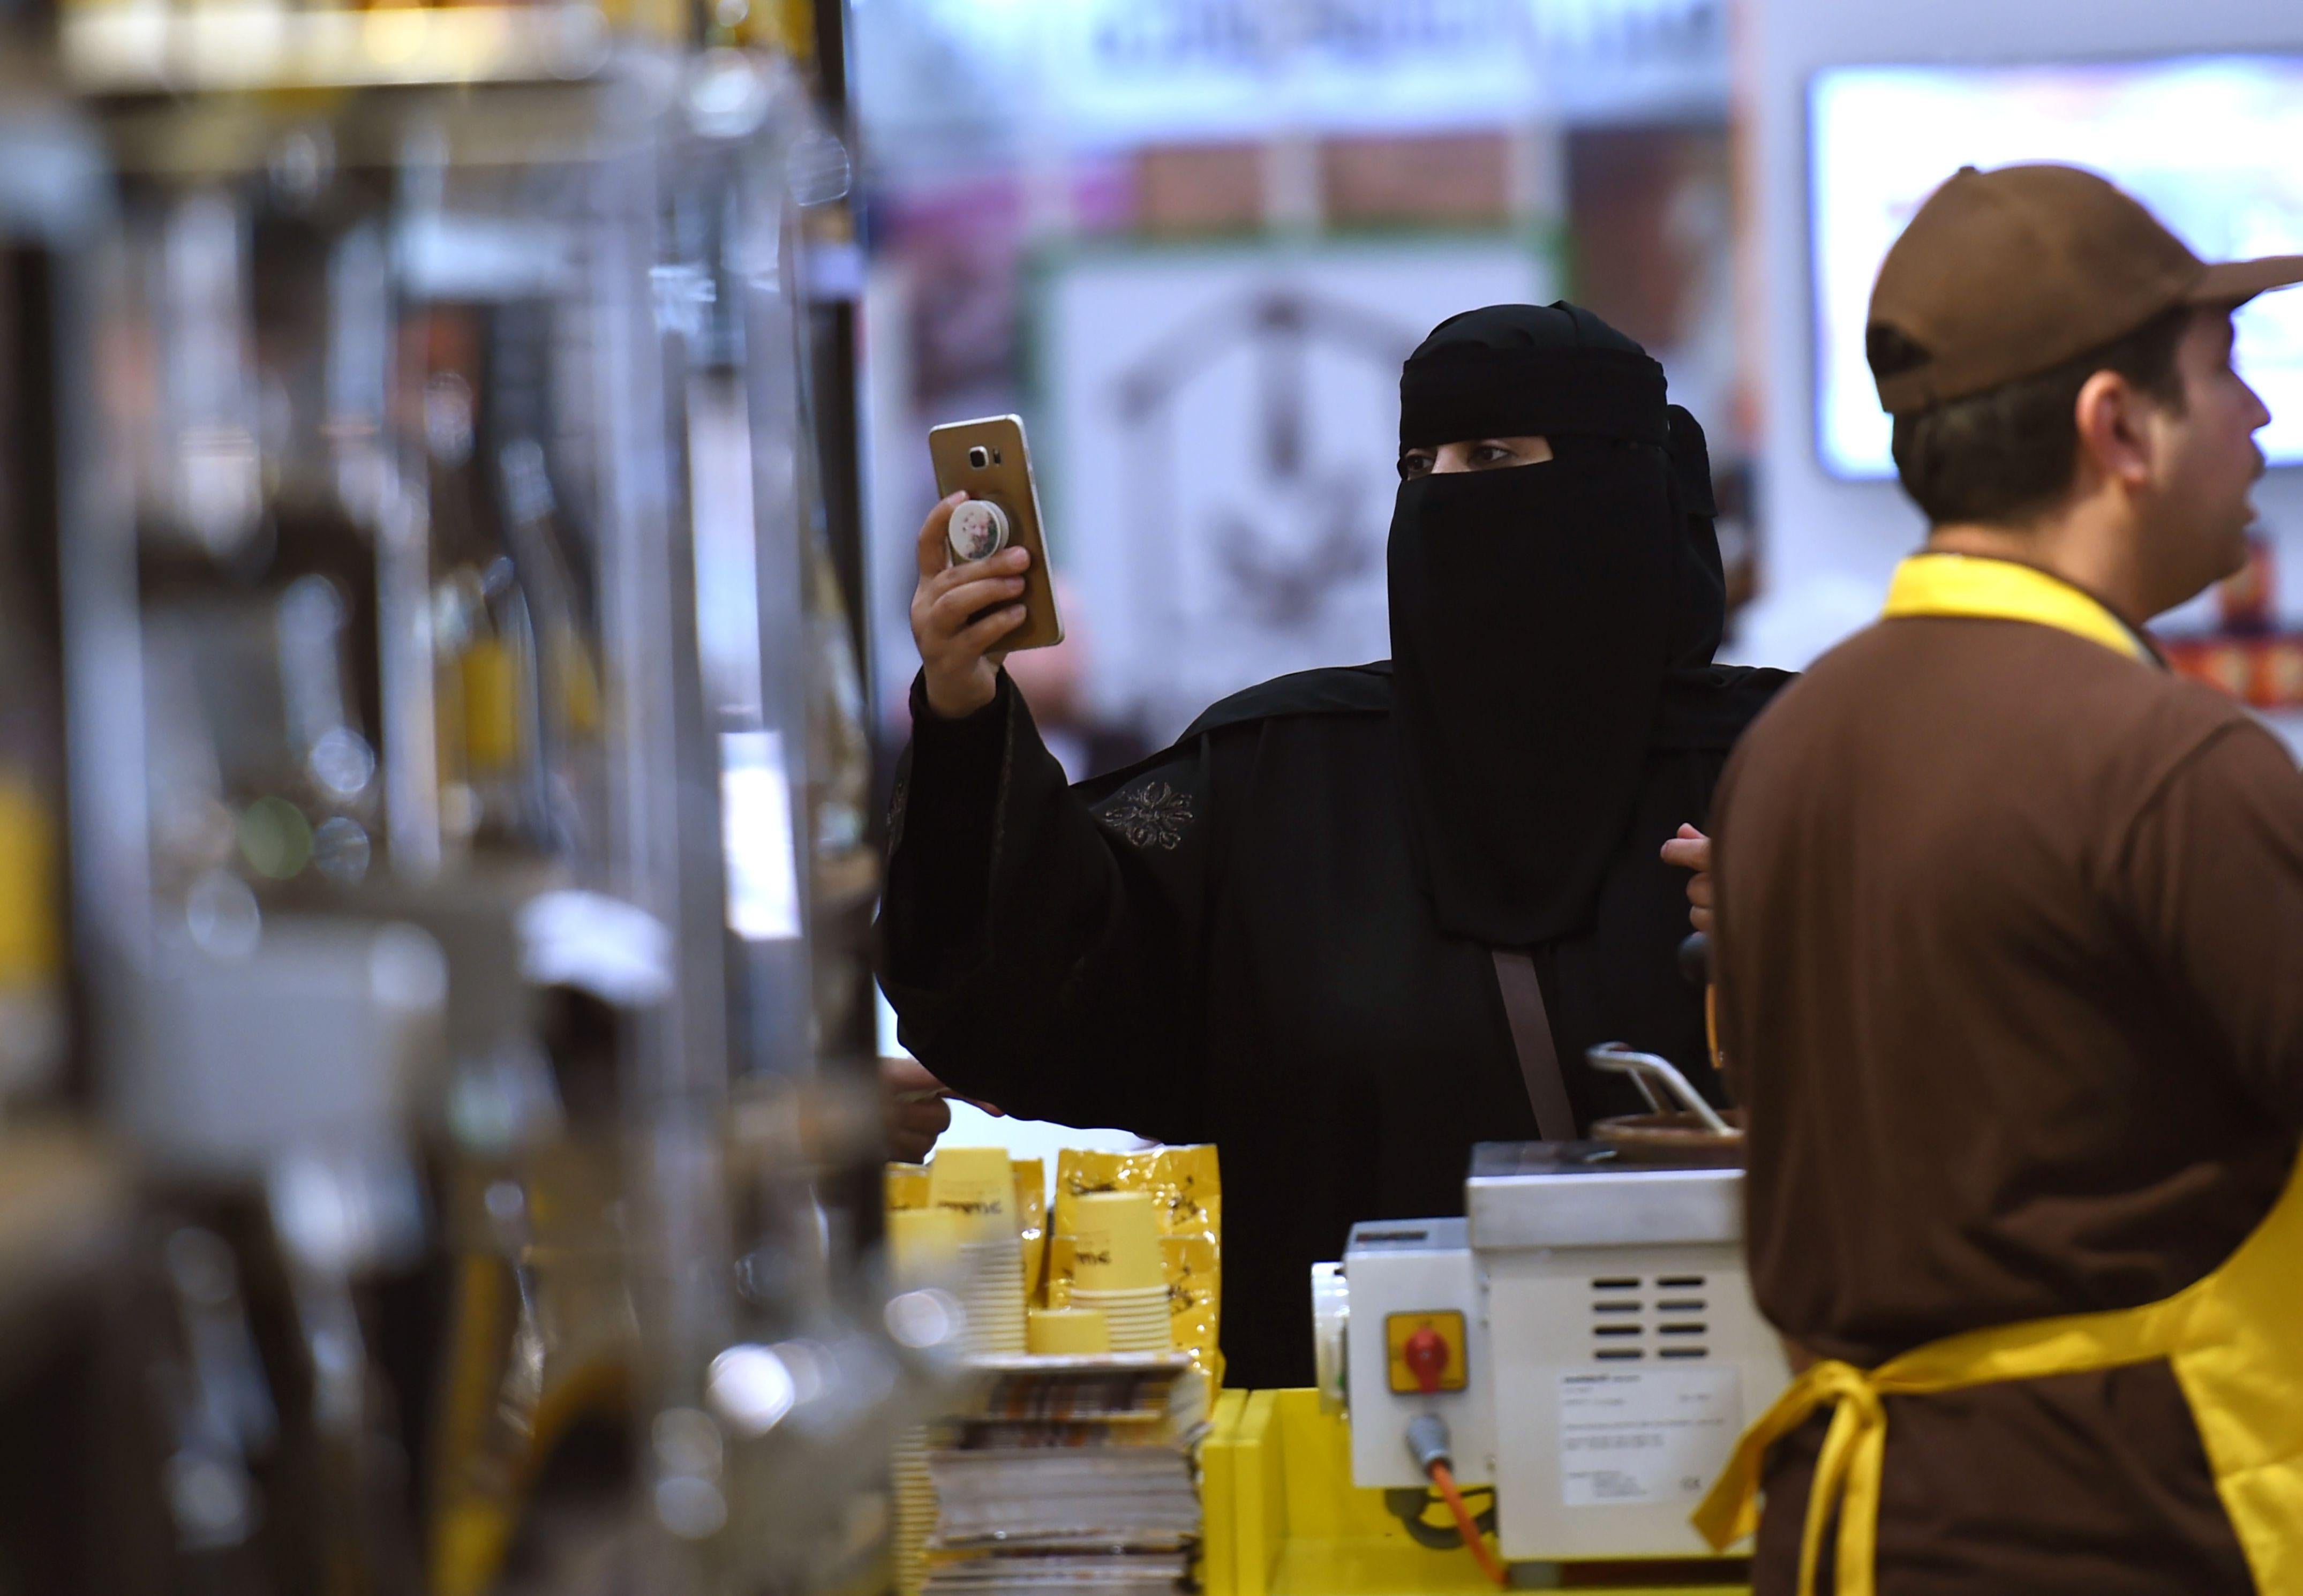 A Saudi woman holds up her cellphone next to a stand at the International Coffee and Chocolate Exhibition.